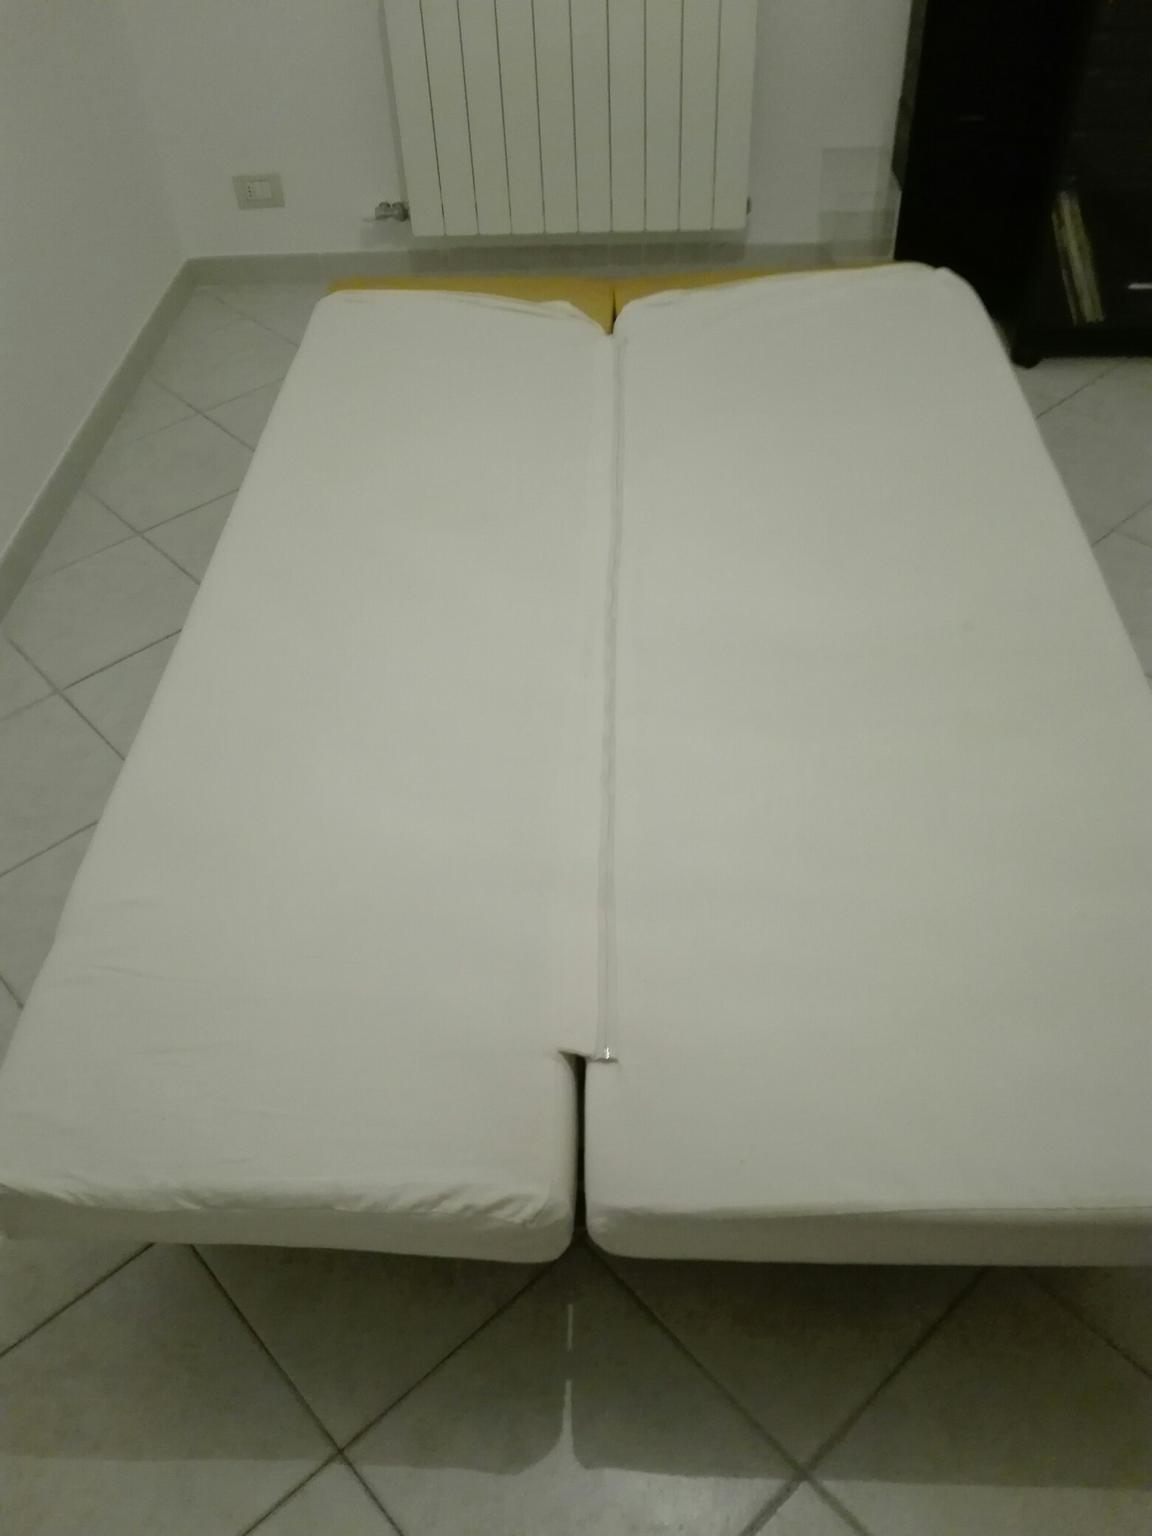 Divano Letto Ikea Exarby.Divano Letto Ikea Exarby In 10141 Torino For 40 00 For Sale Shpock